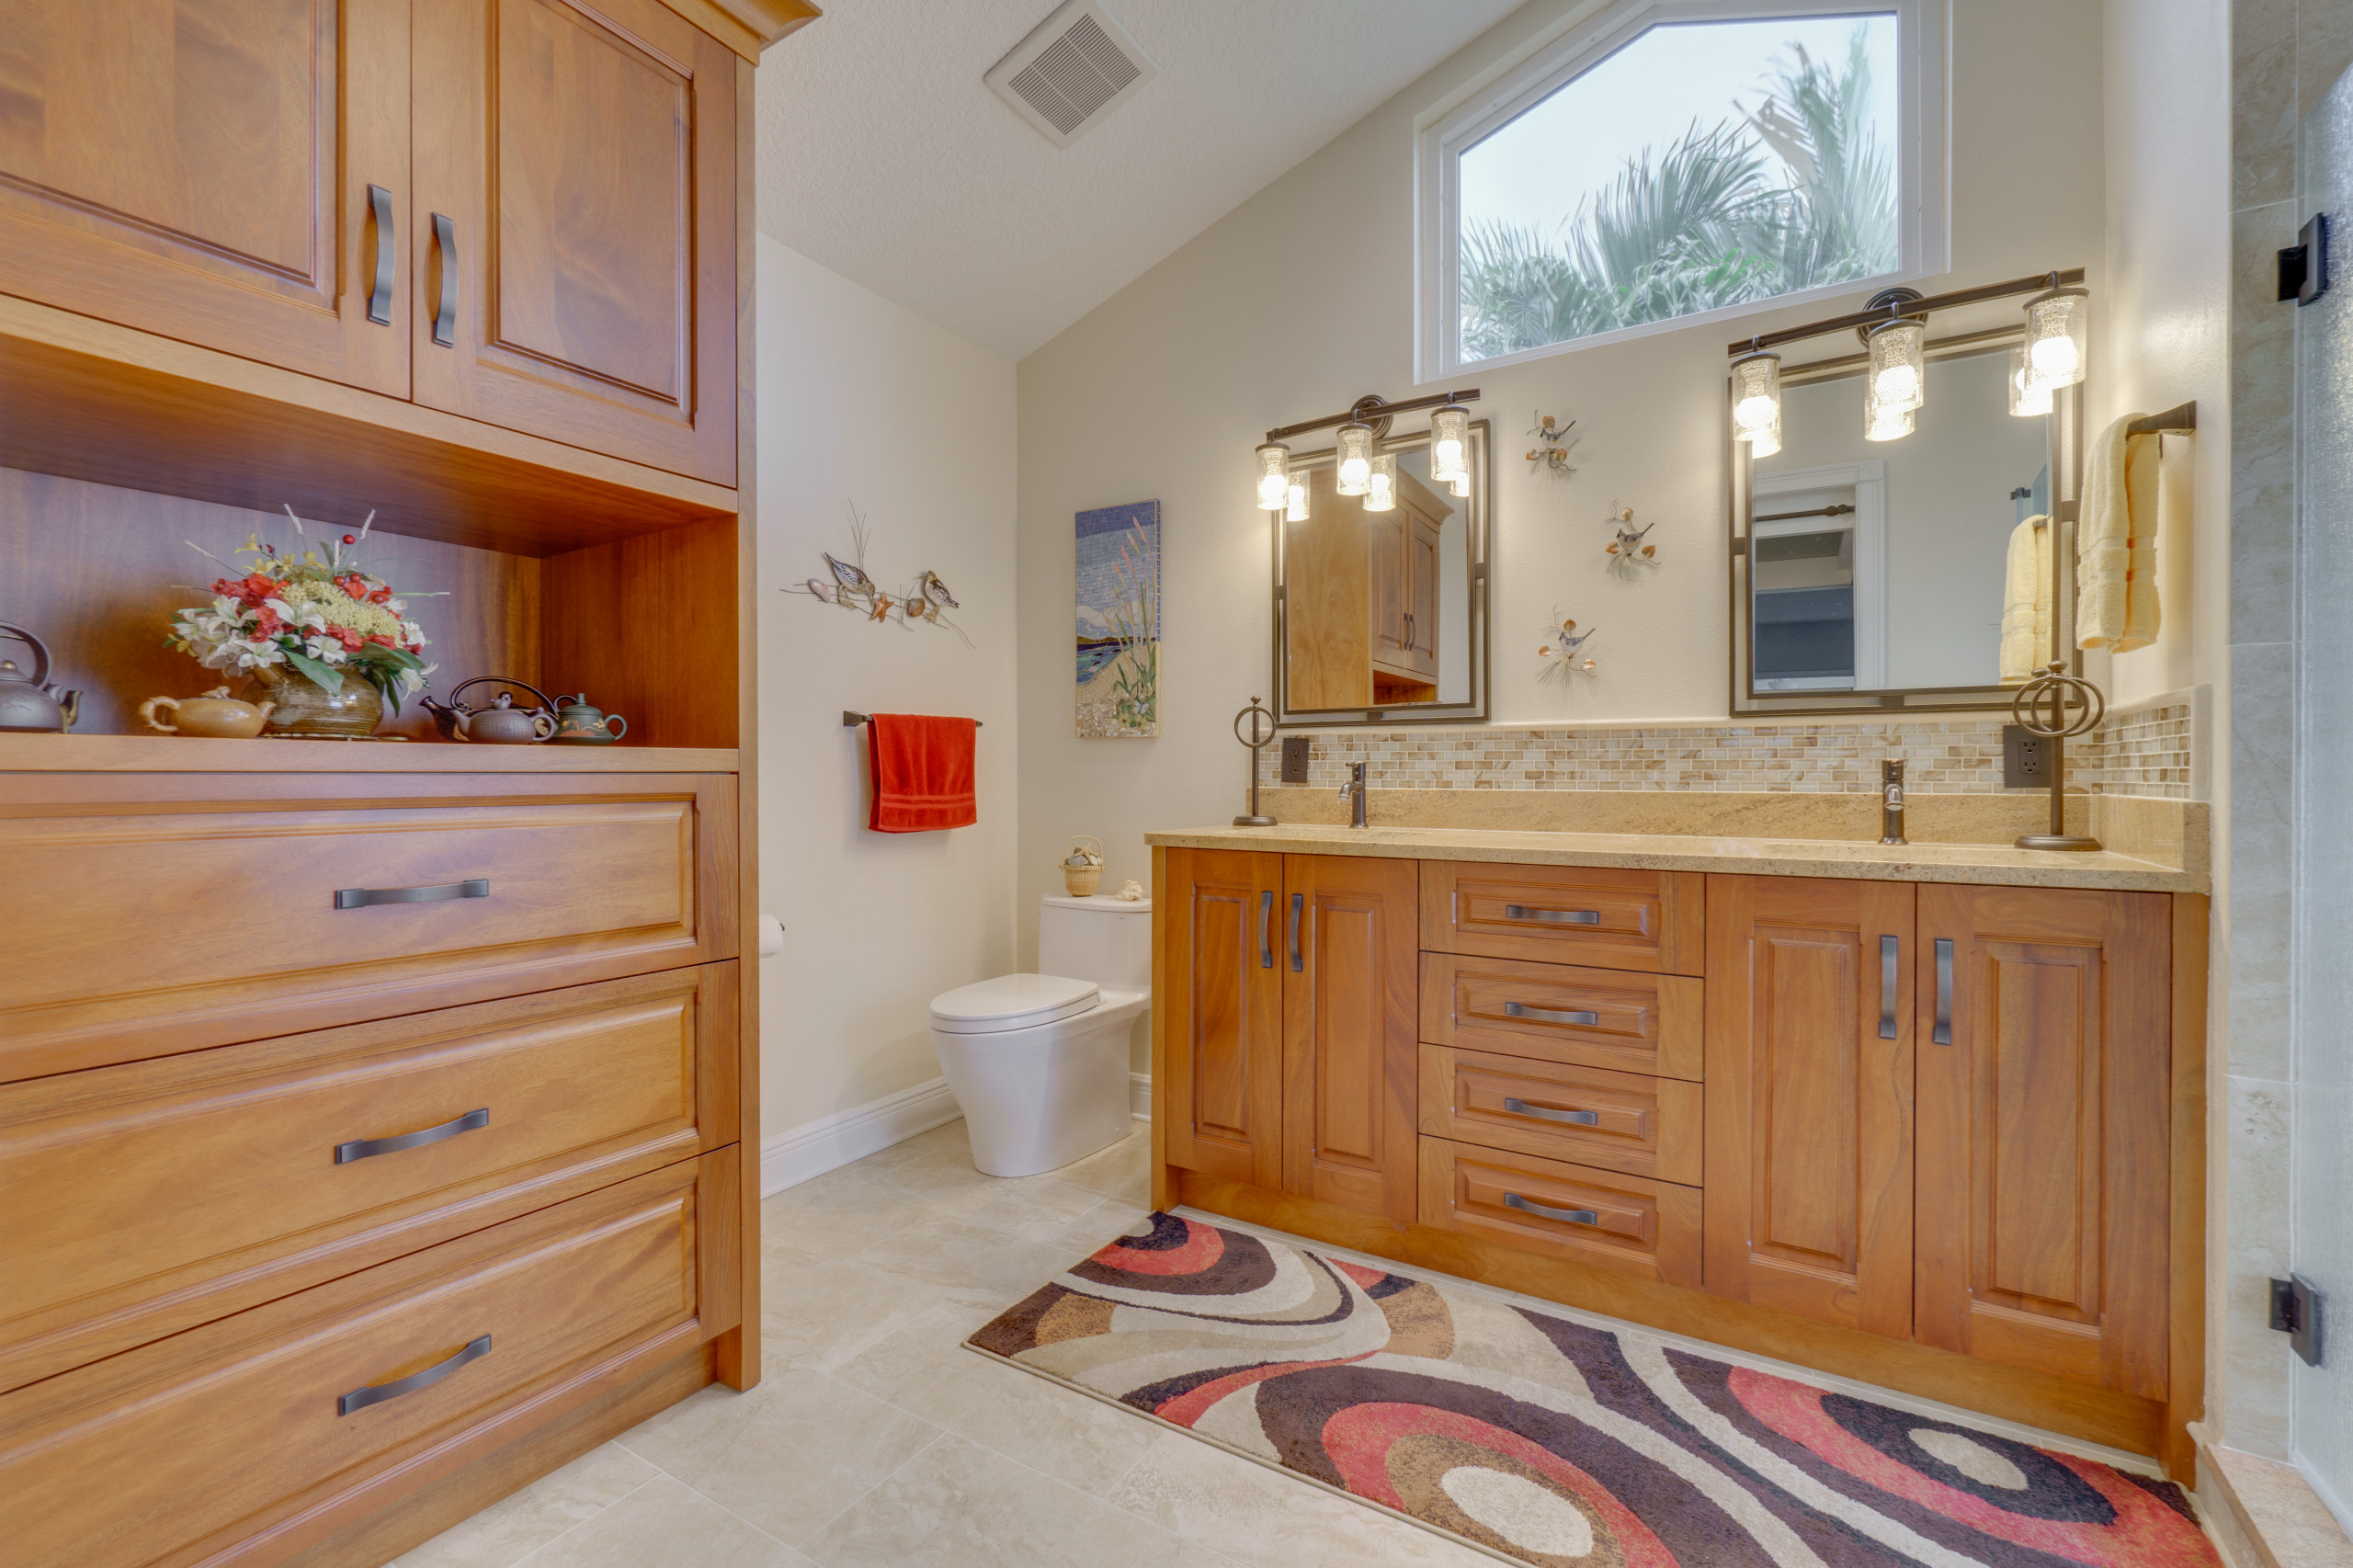 Traditional Kitchen and Bath Remodel